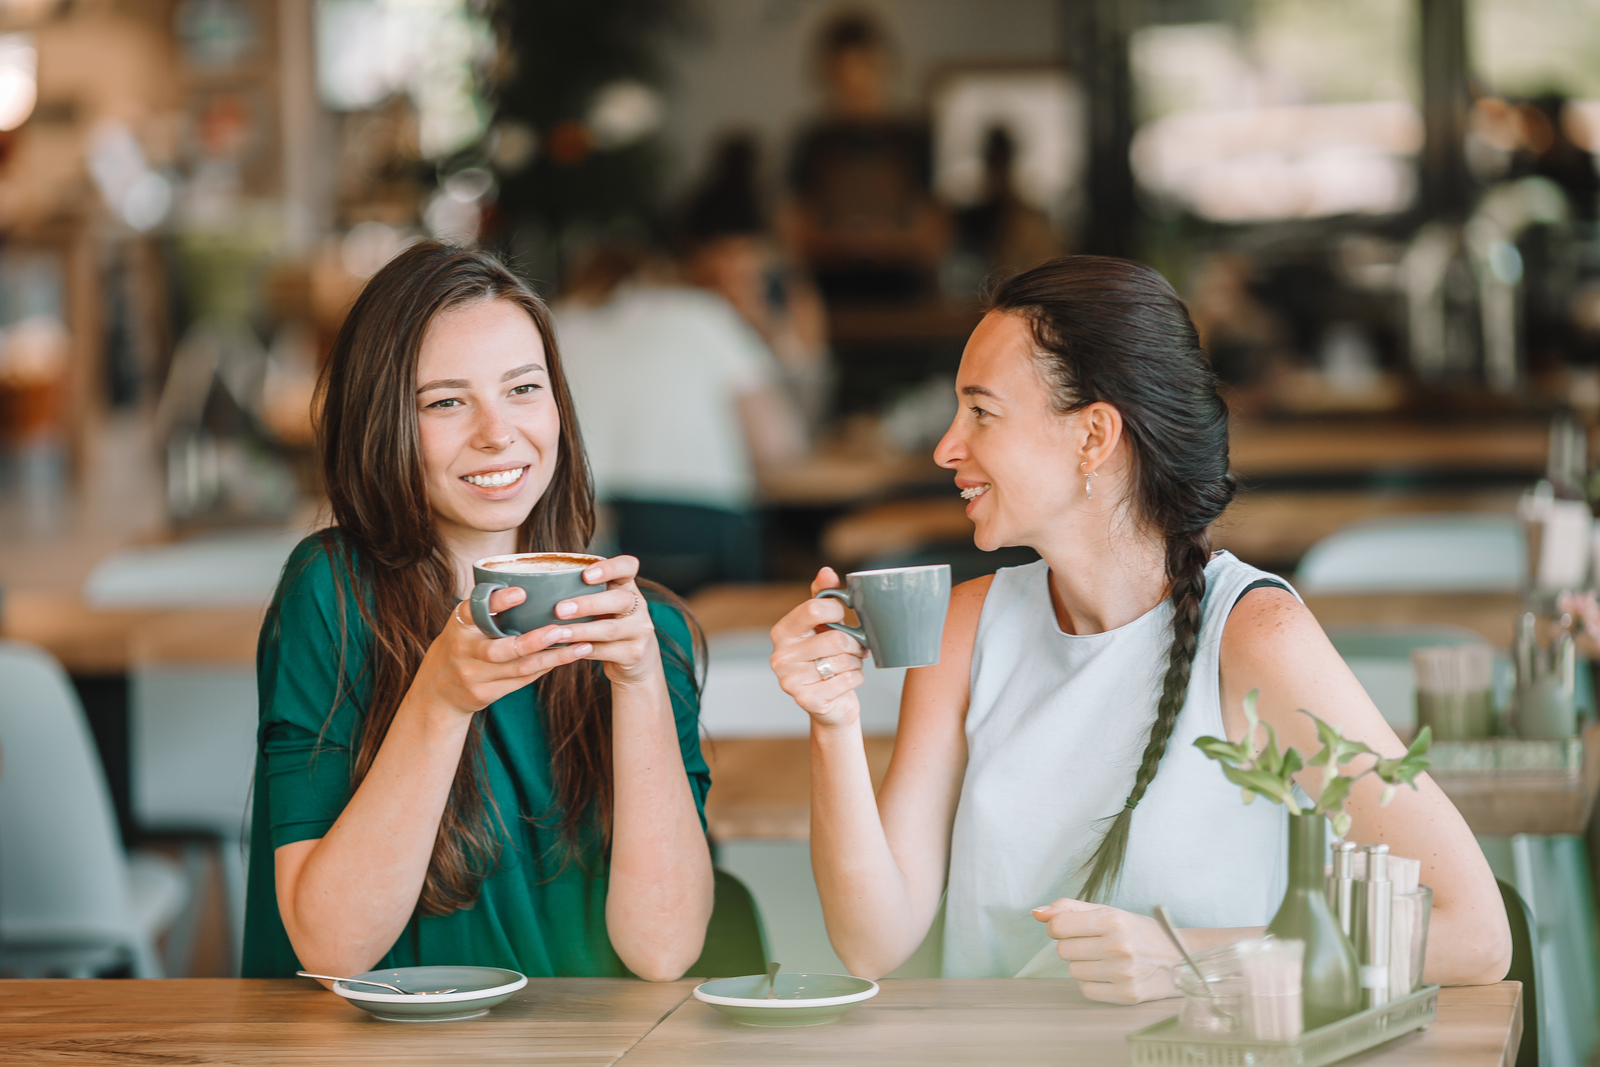 https://www.desocialmediatraining.nl/wp-content/uploads/30437572_happy-smiling-young-women-with-coffee-cups-at-cafe.jpg